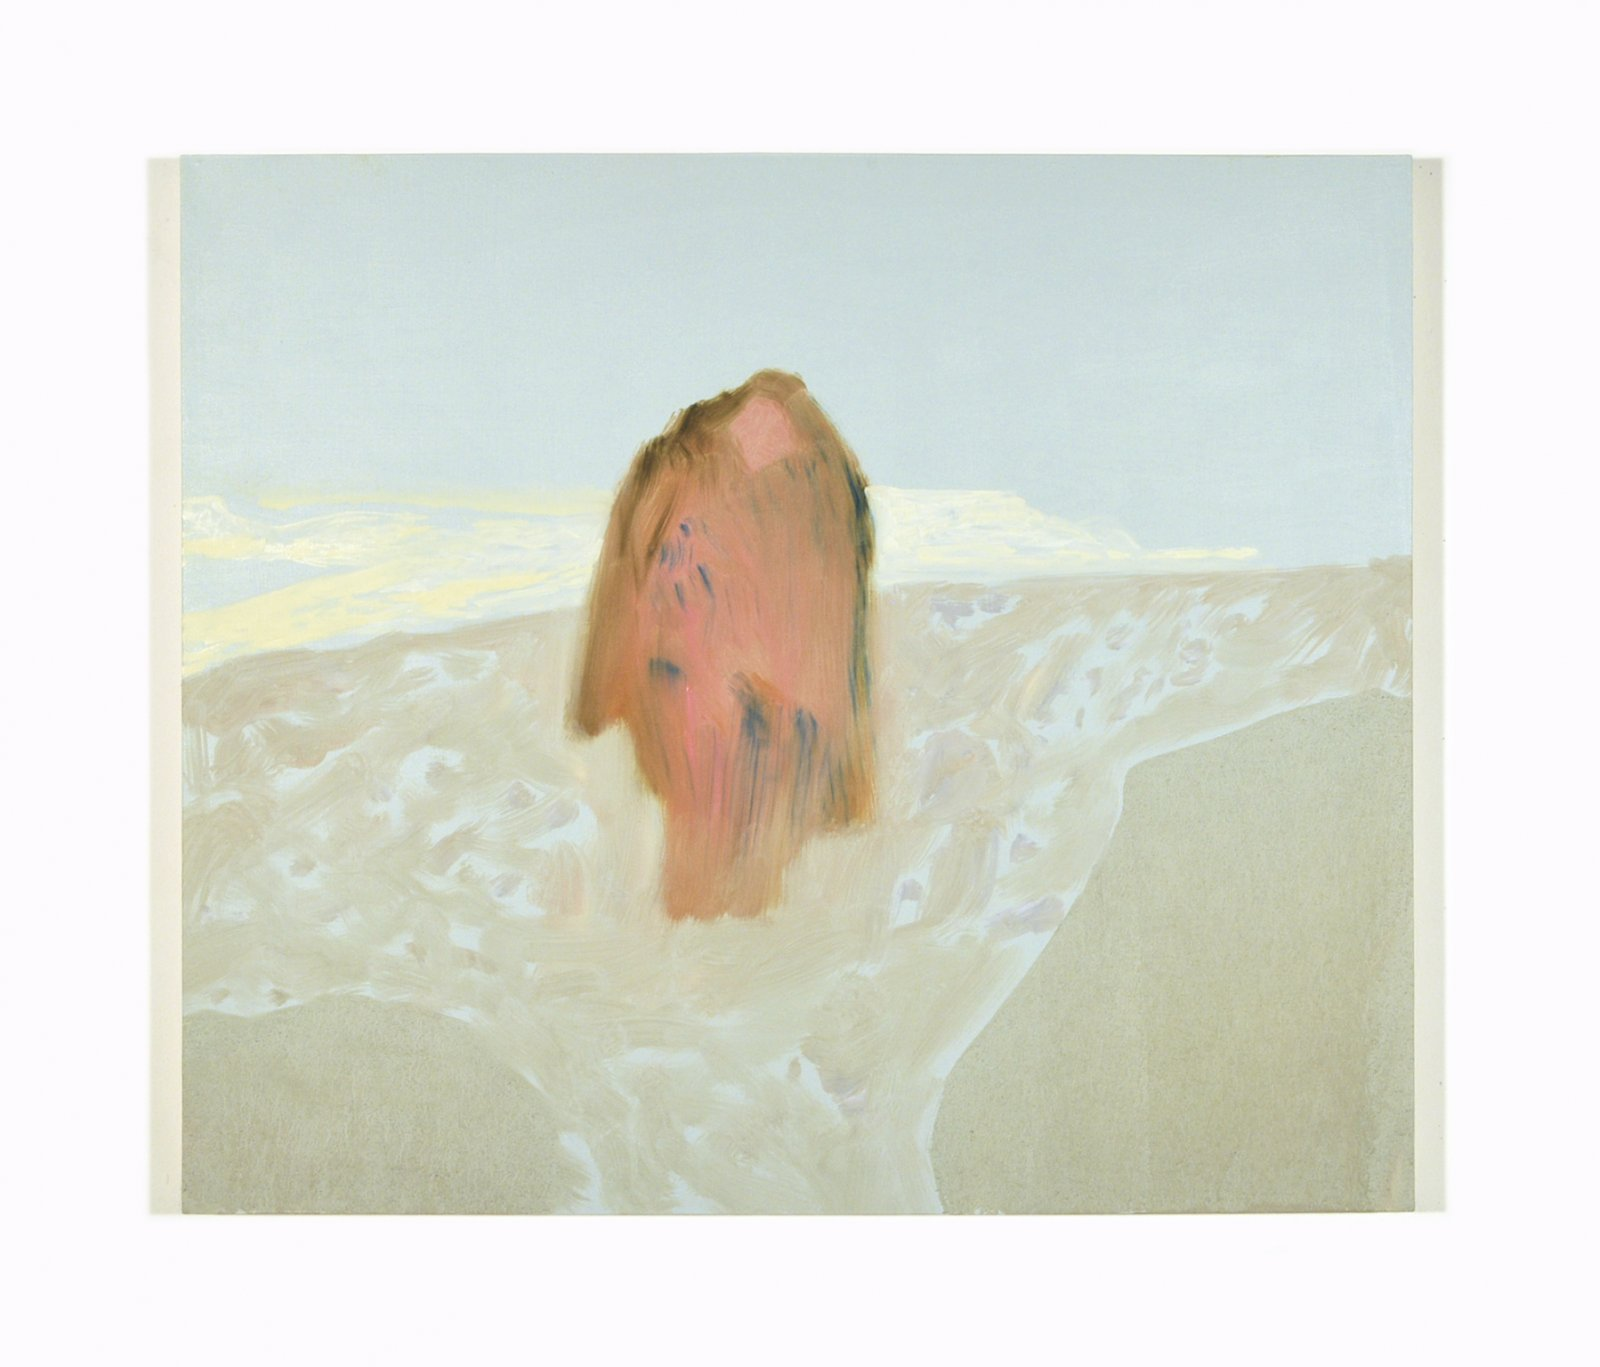 Rebecca Brewer,Making the Shift, 2008, oil on panel, 36 x 42 in. (91 x 107 cm)